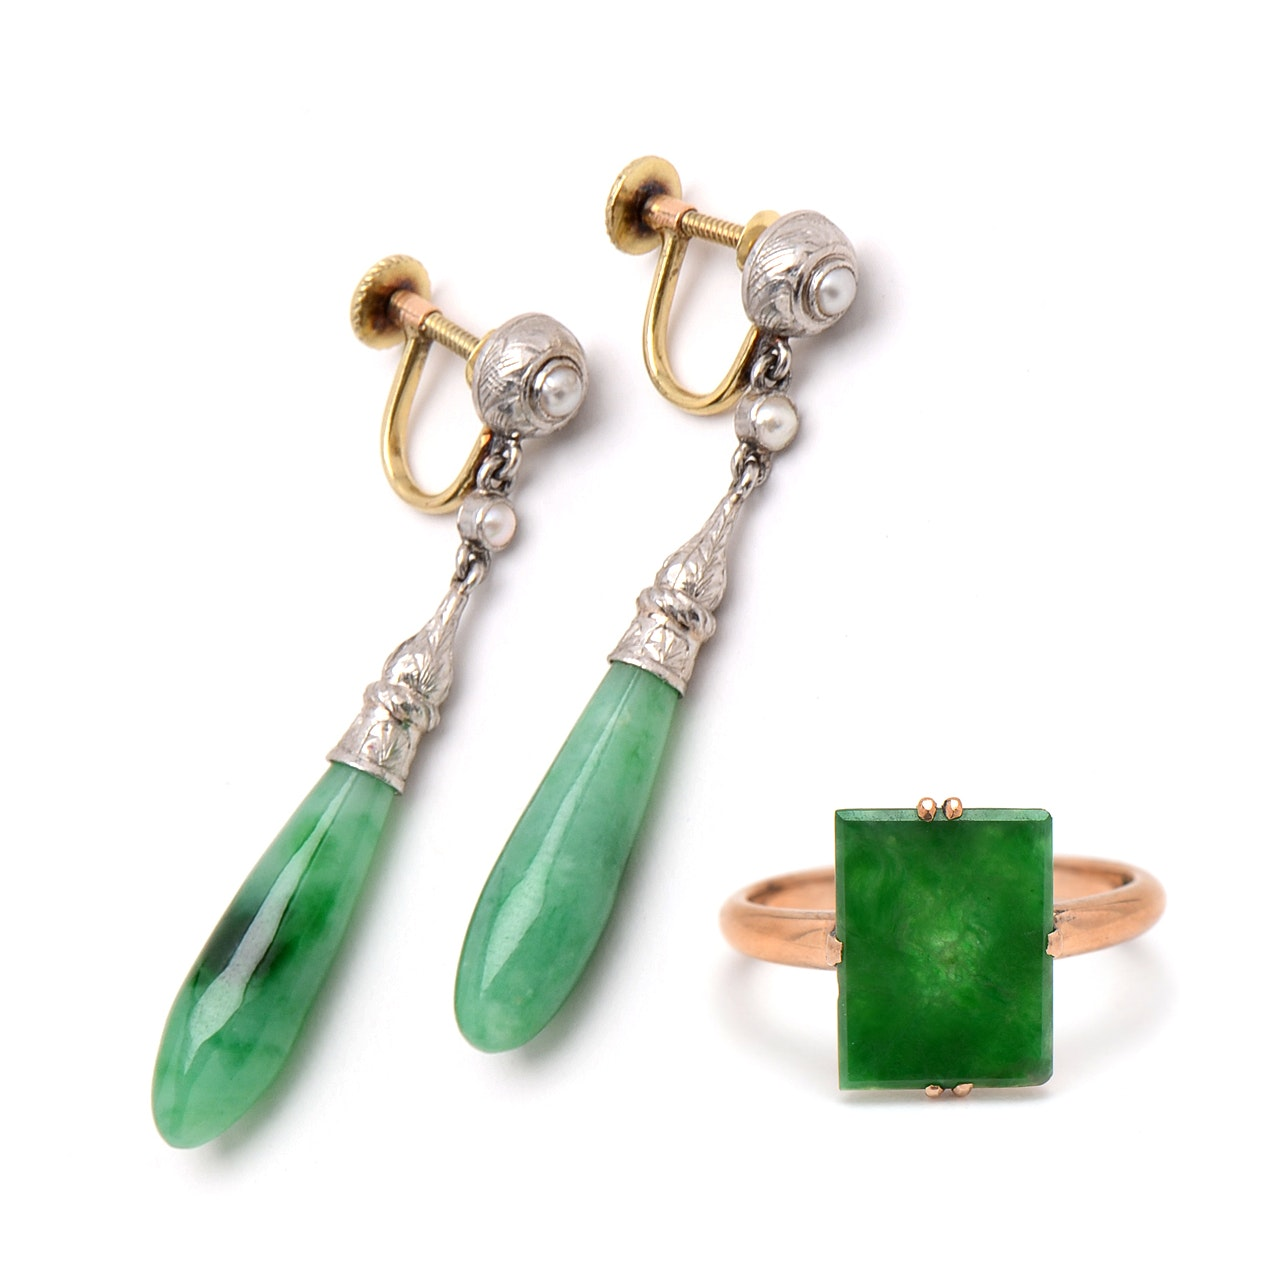 Gold and Platinum Jadeite and Pearl Drop Earrings With 14K Gold Jadeite Ring